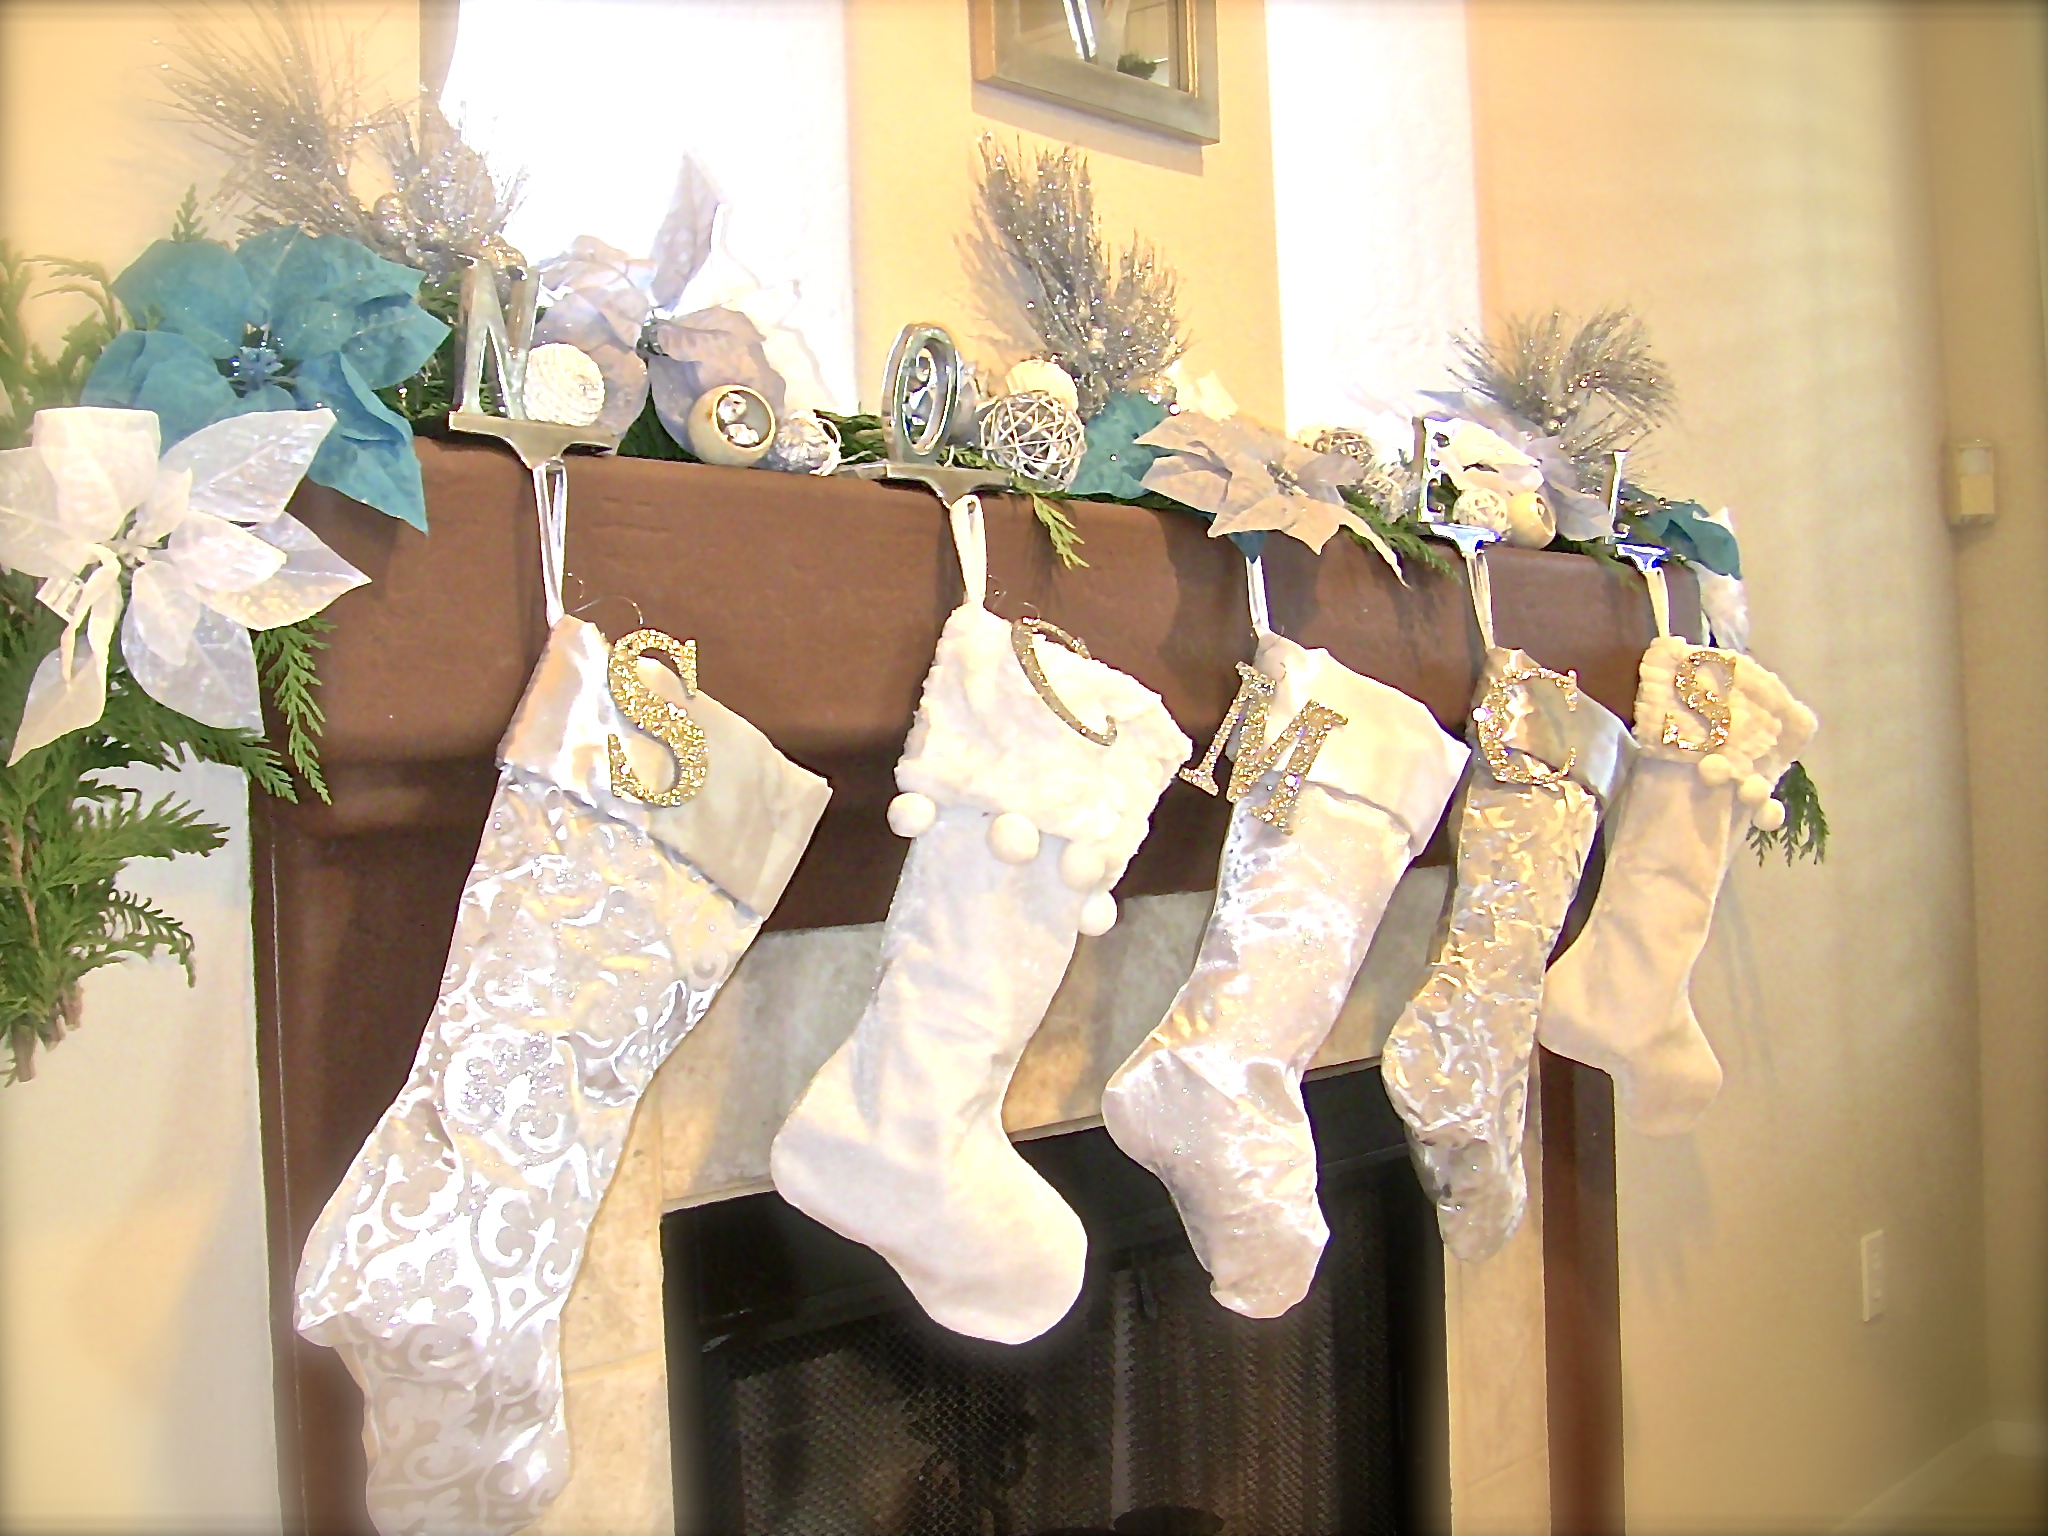 Decorative Christmas Stocking Hanger With White Shocks On Wooden Fireplace Mantel Kit For Christmas Decoration Ideas